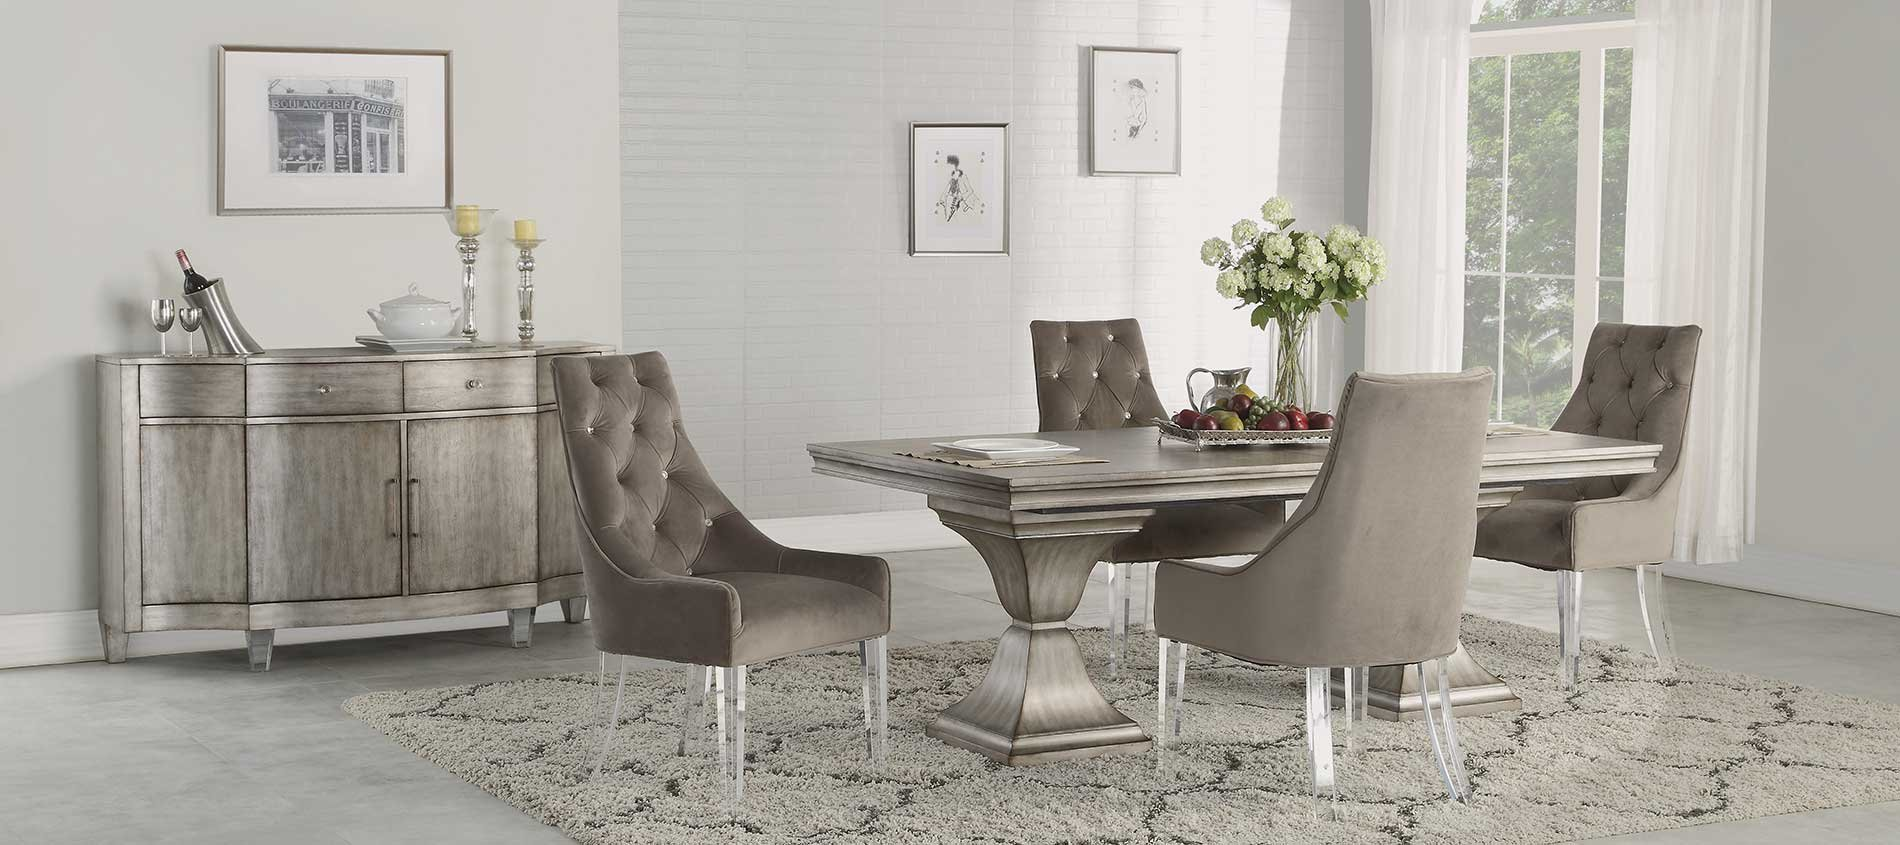 Levin Furniture Dining Room Set With Buffet Near Seaworld